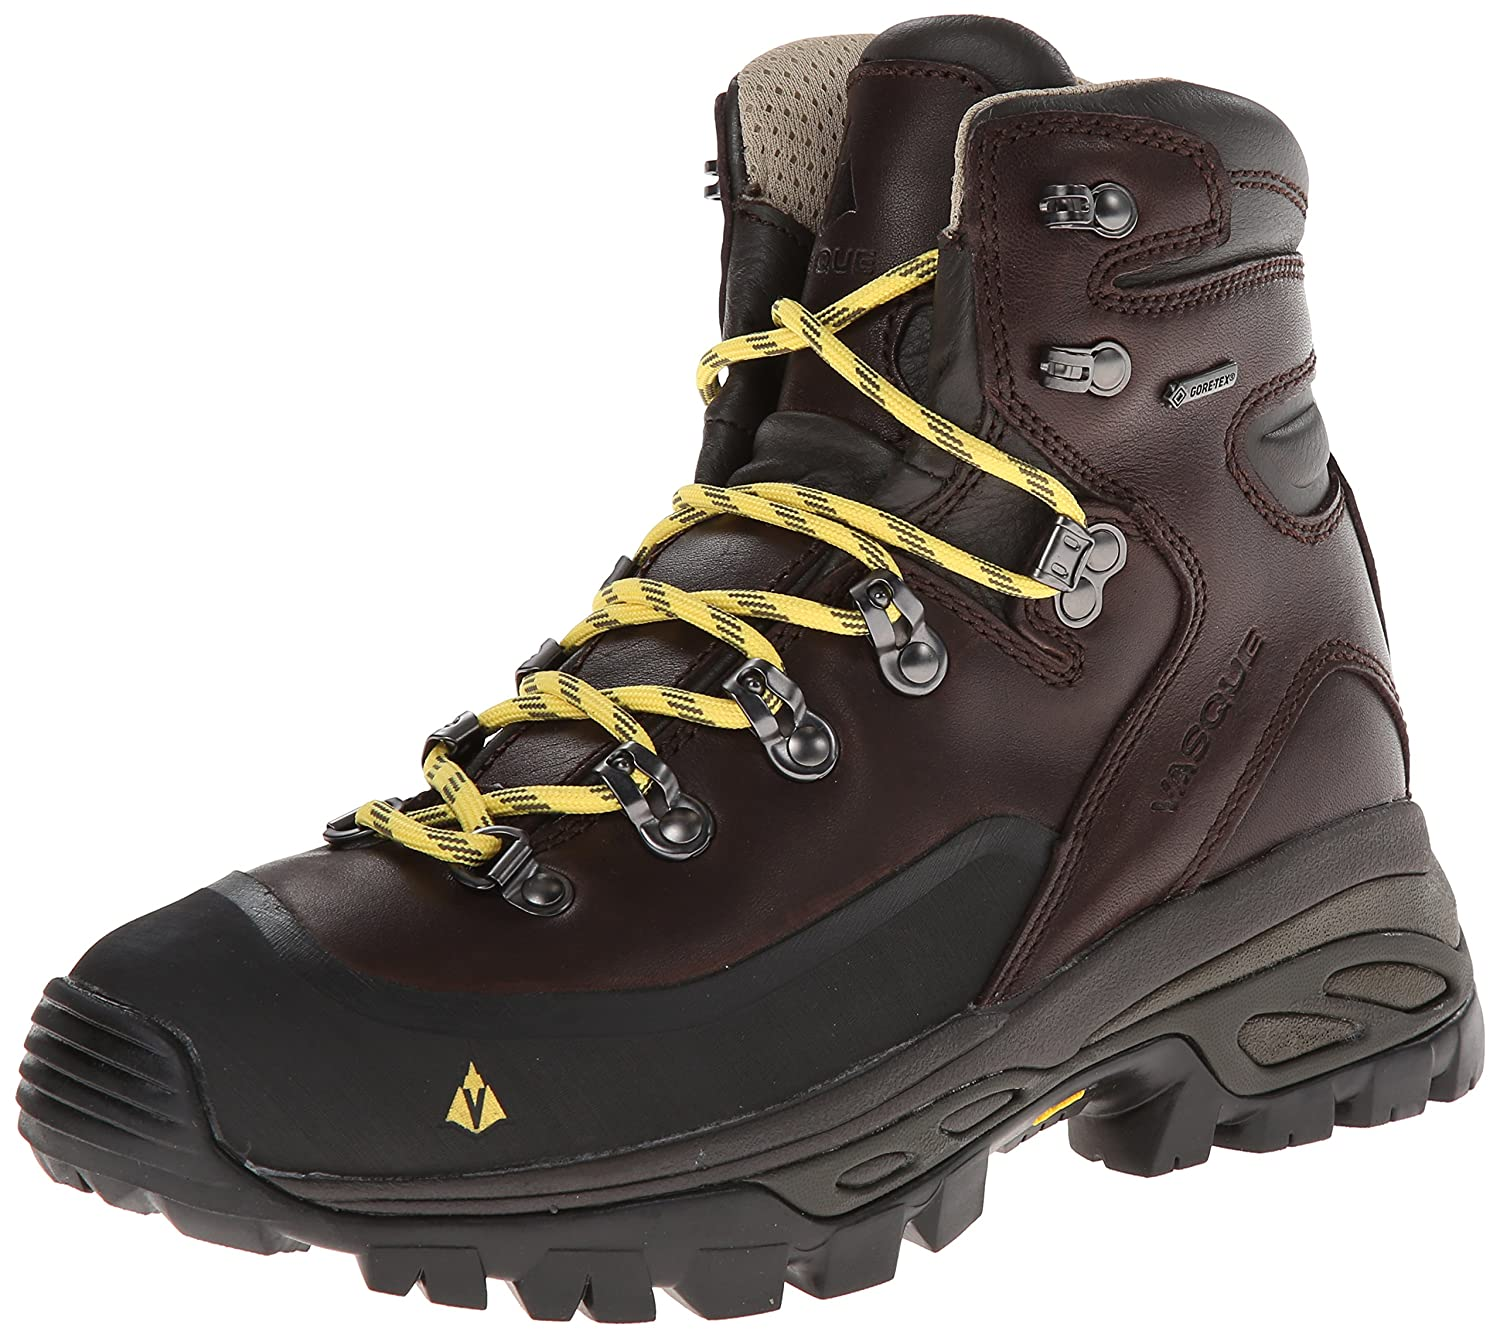 Vasque Women's Eriksson Gore-Tex Hiking Boot B00I6CCAHK 6.5 B(M) US|Coffee Bean/Primrose Yellow